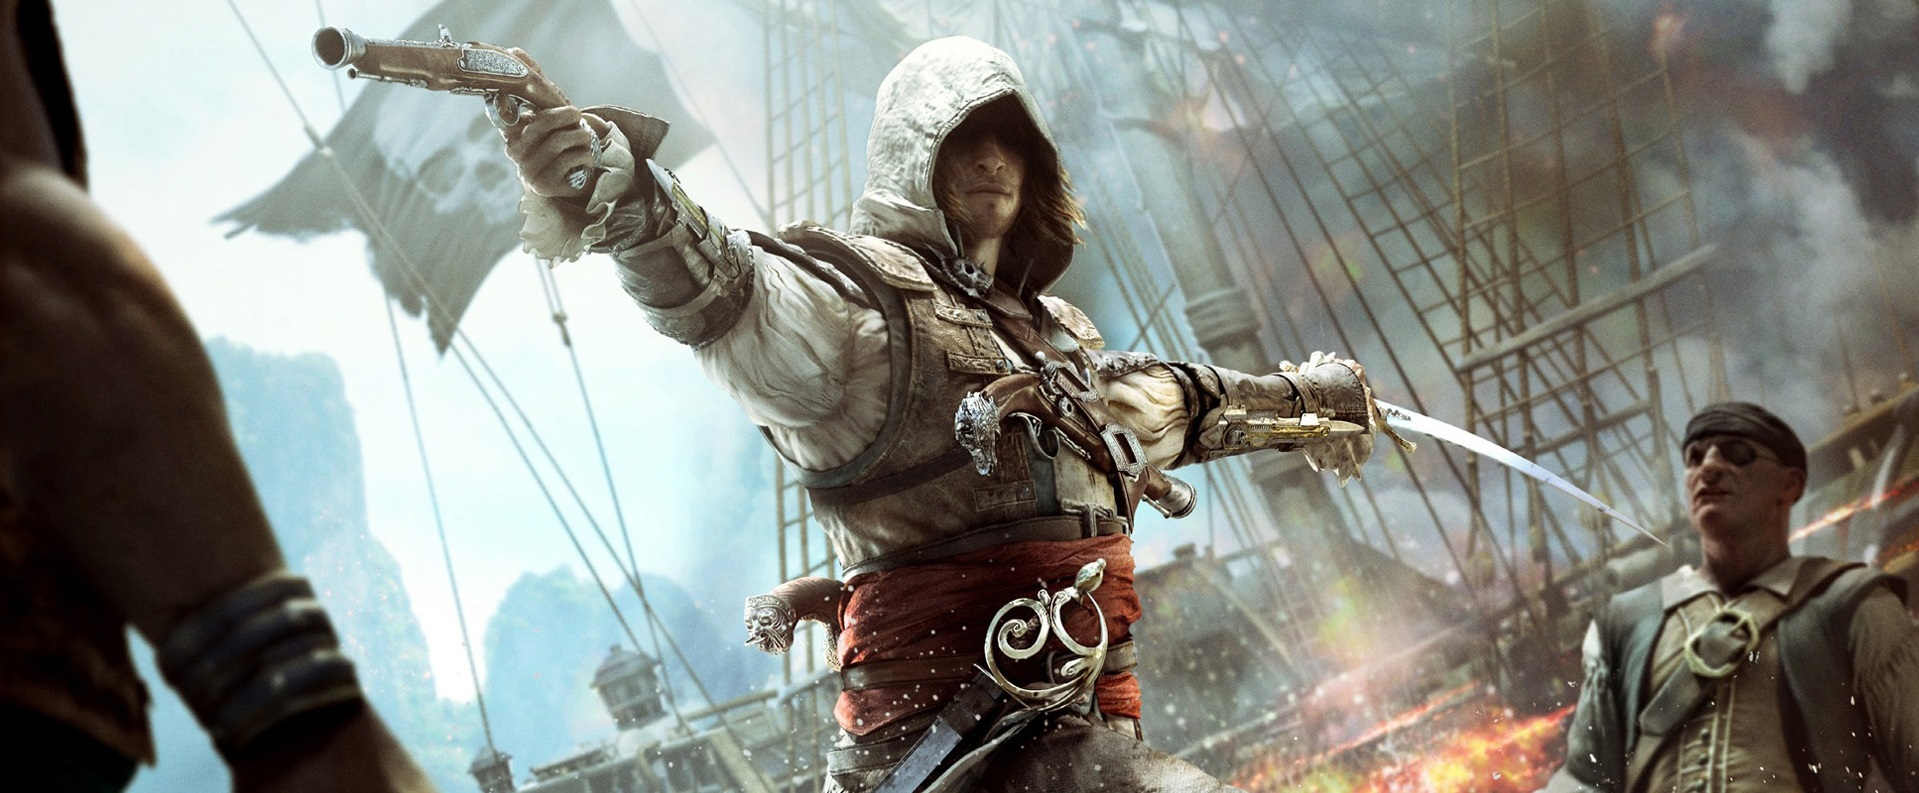 Assassin's Creed IV: Black Flag is Great, But it's Time for a Change